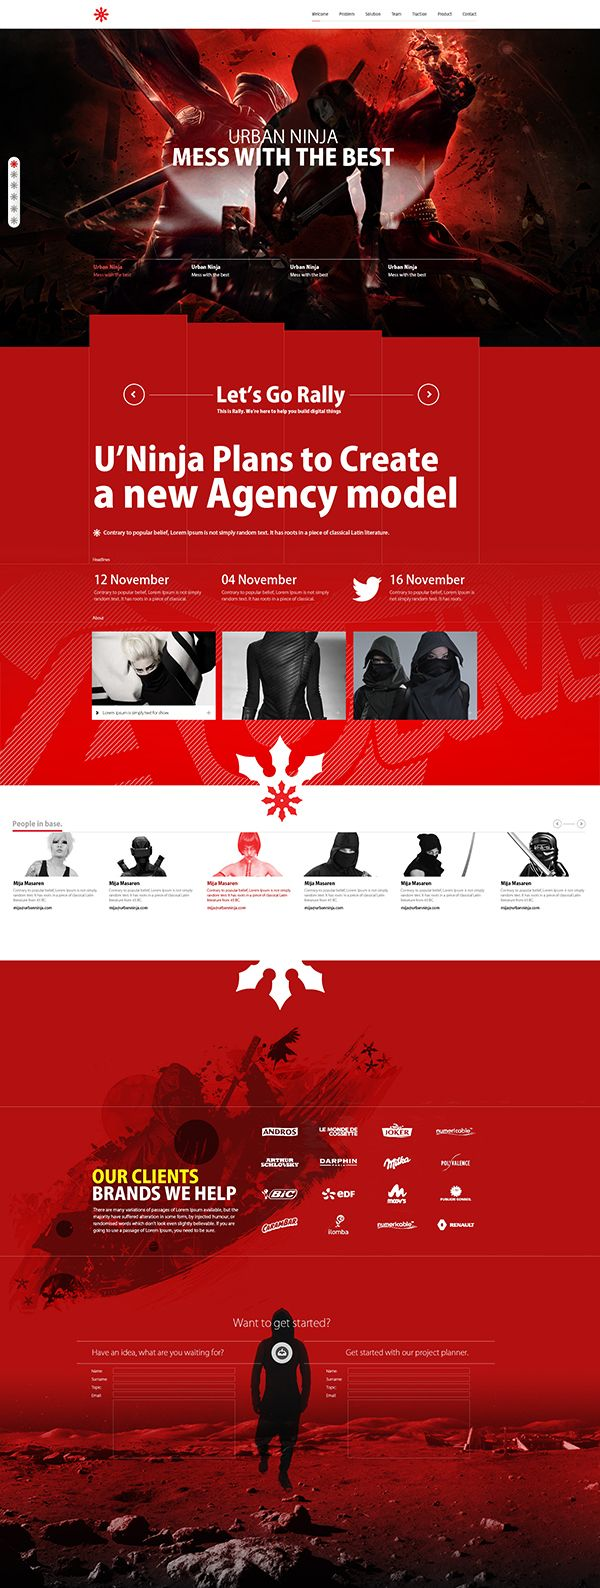 Urban Ninja by Marek Dąbrowski, via Behance | #webdesign #it #web #design #layout #userinterface #website #webdesign < repinned by www.BlickeDeeler.de | Take a look at www.WebsiteDesign-Hamburg.de